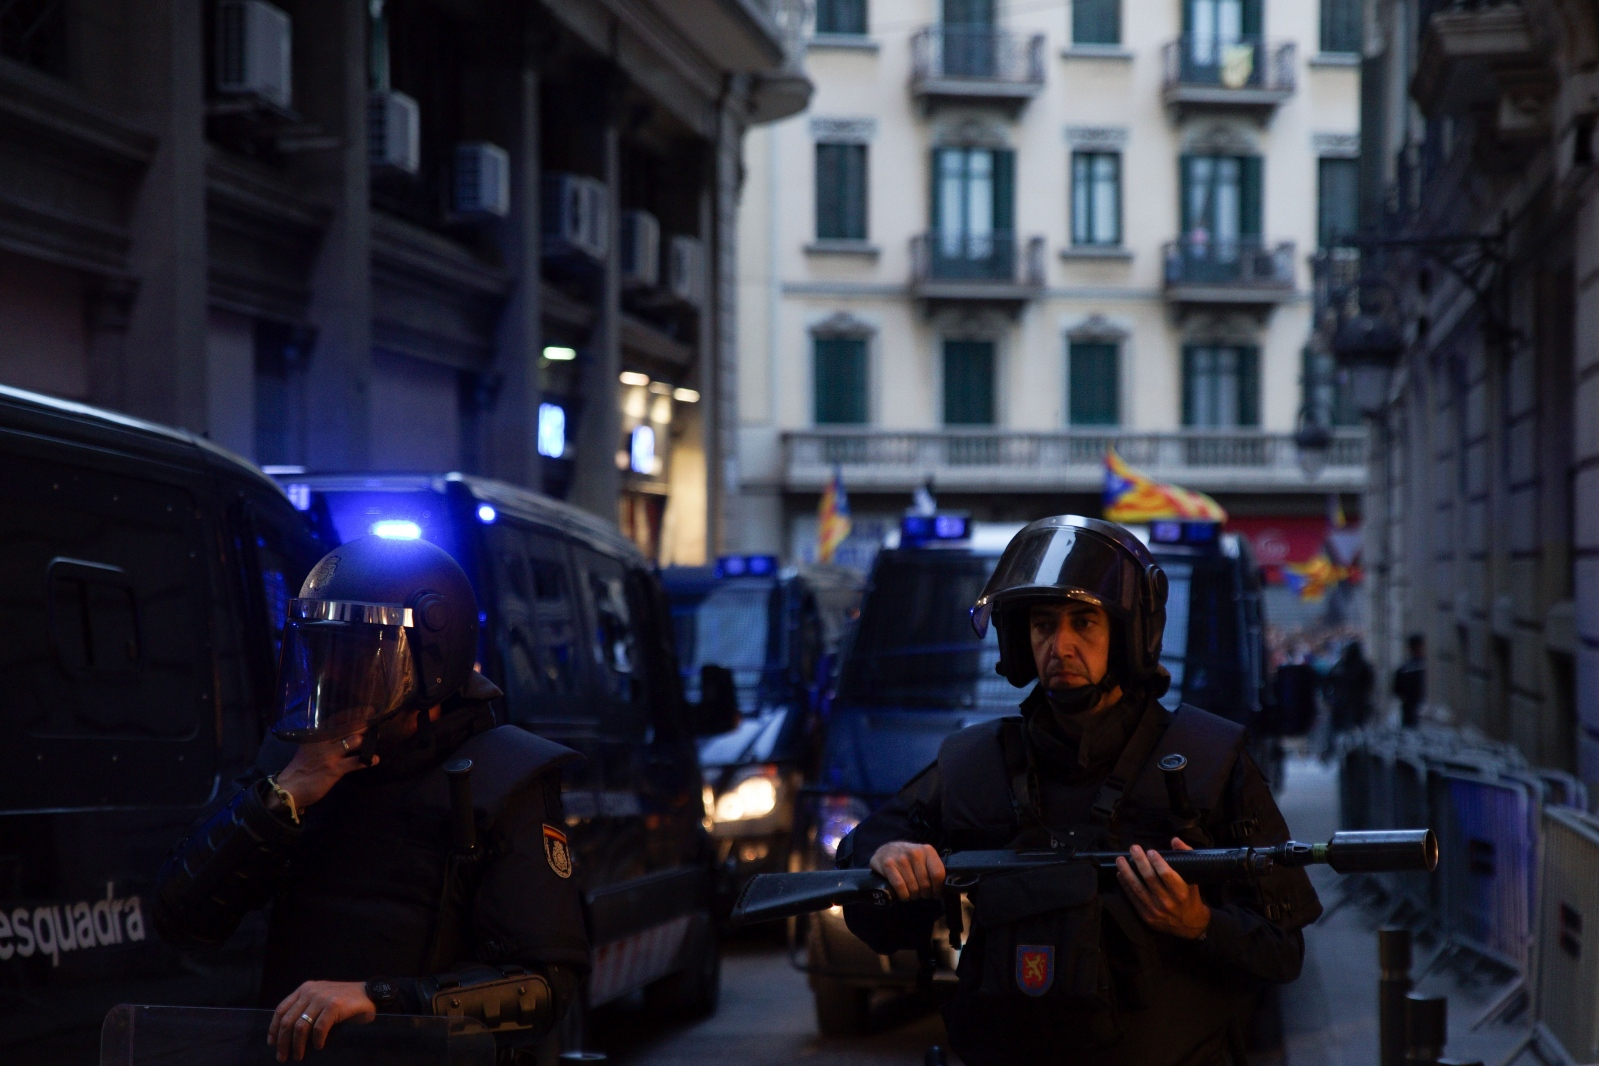 On the first anniversary of the Catalonian referendum on independence, policemen protect a side street of the seat of the Spanish national police in Barcelona. Barcelona, October 1, 2018.